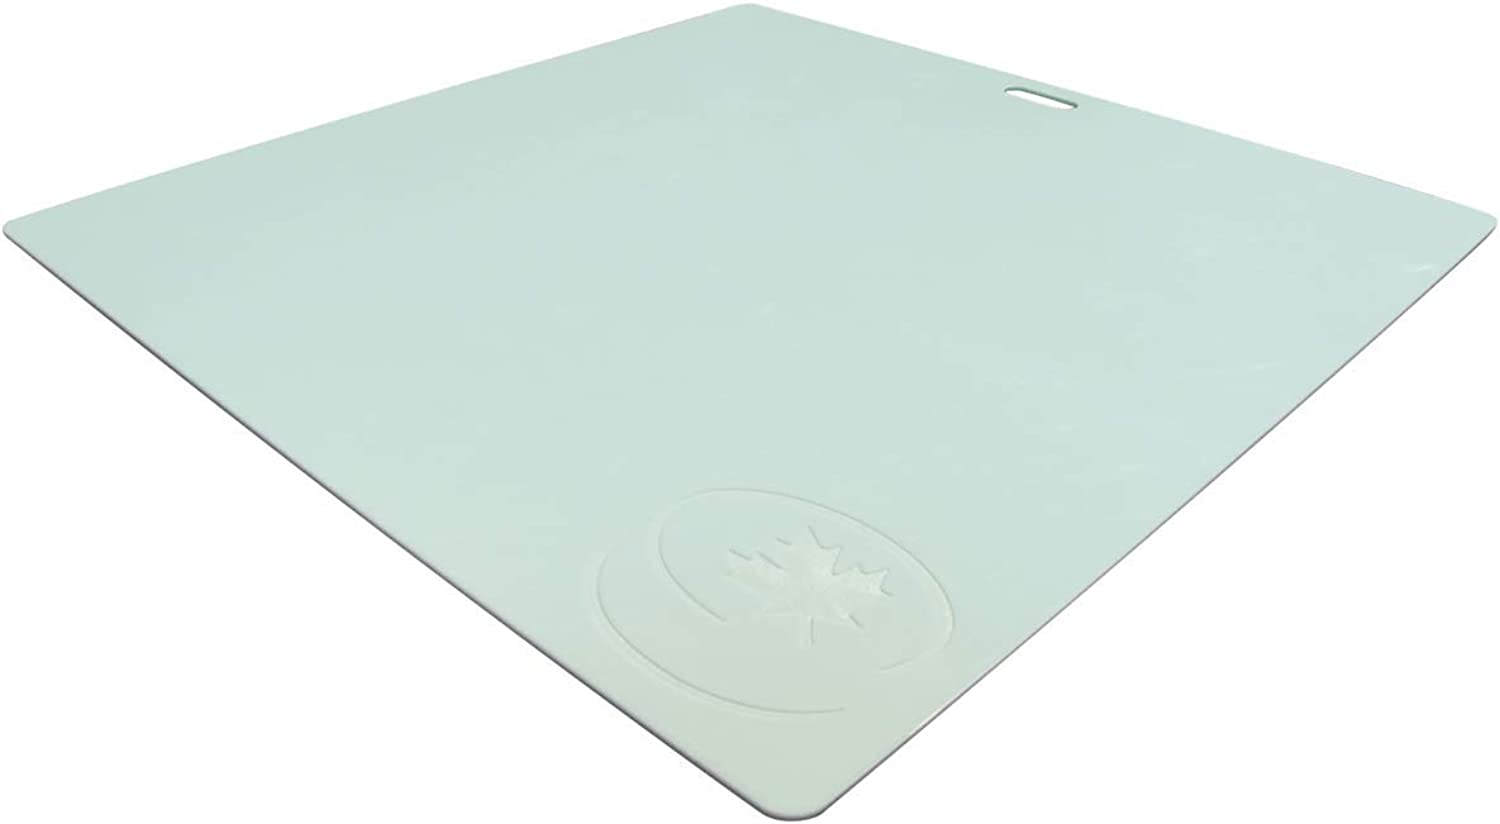 PRO Synthetic Ice Shooting & Practice Pad Mat 39'' x 39''